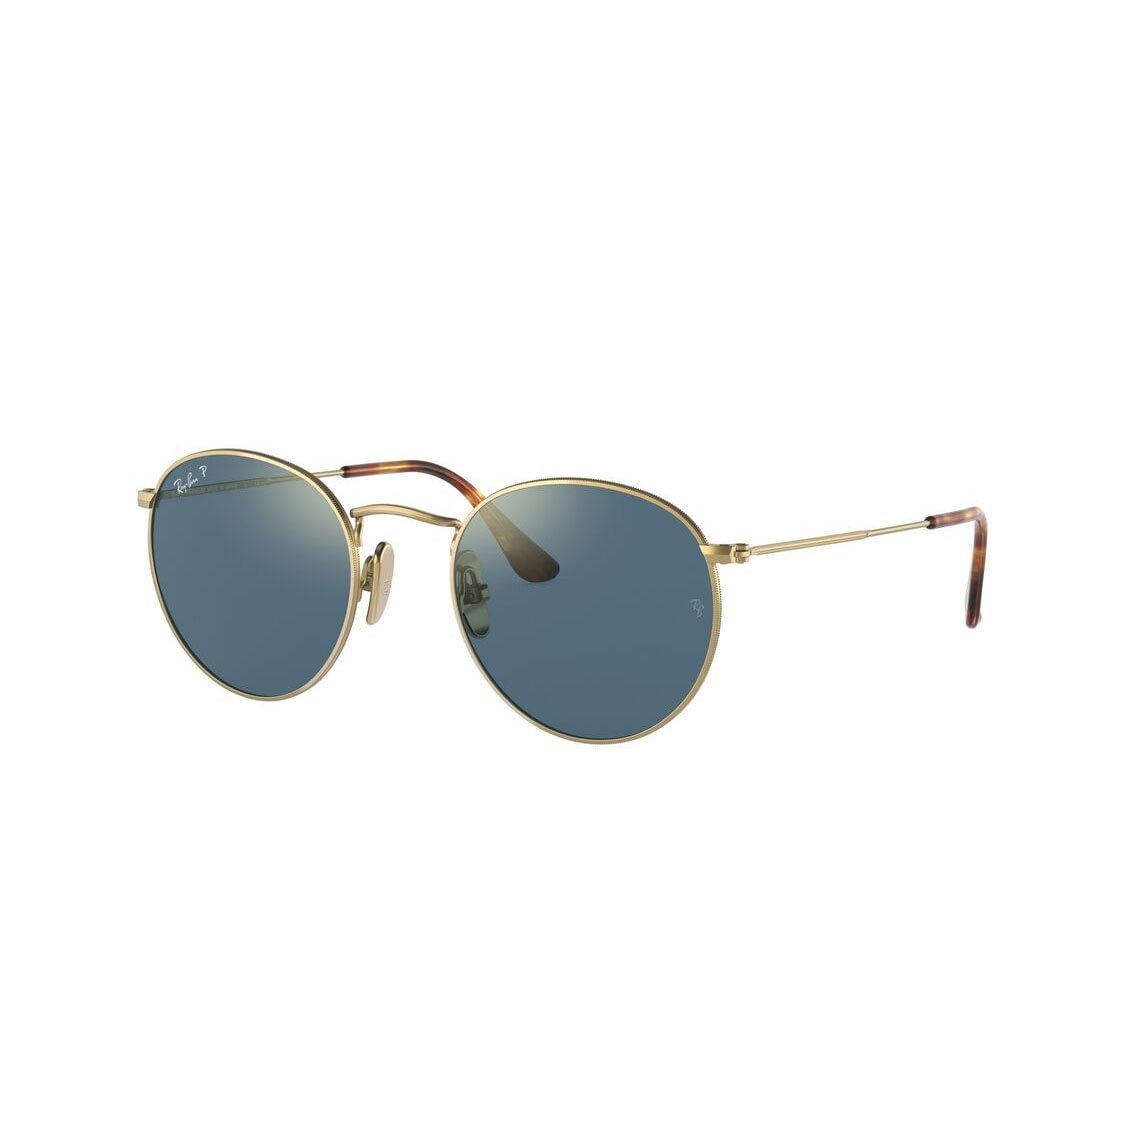 Ray-Ban Round RB8247 9217T0 4721